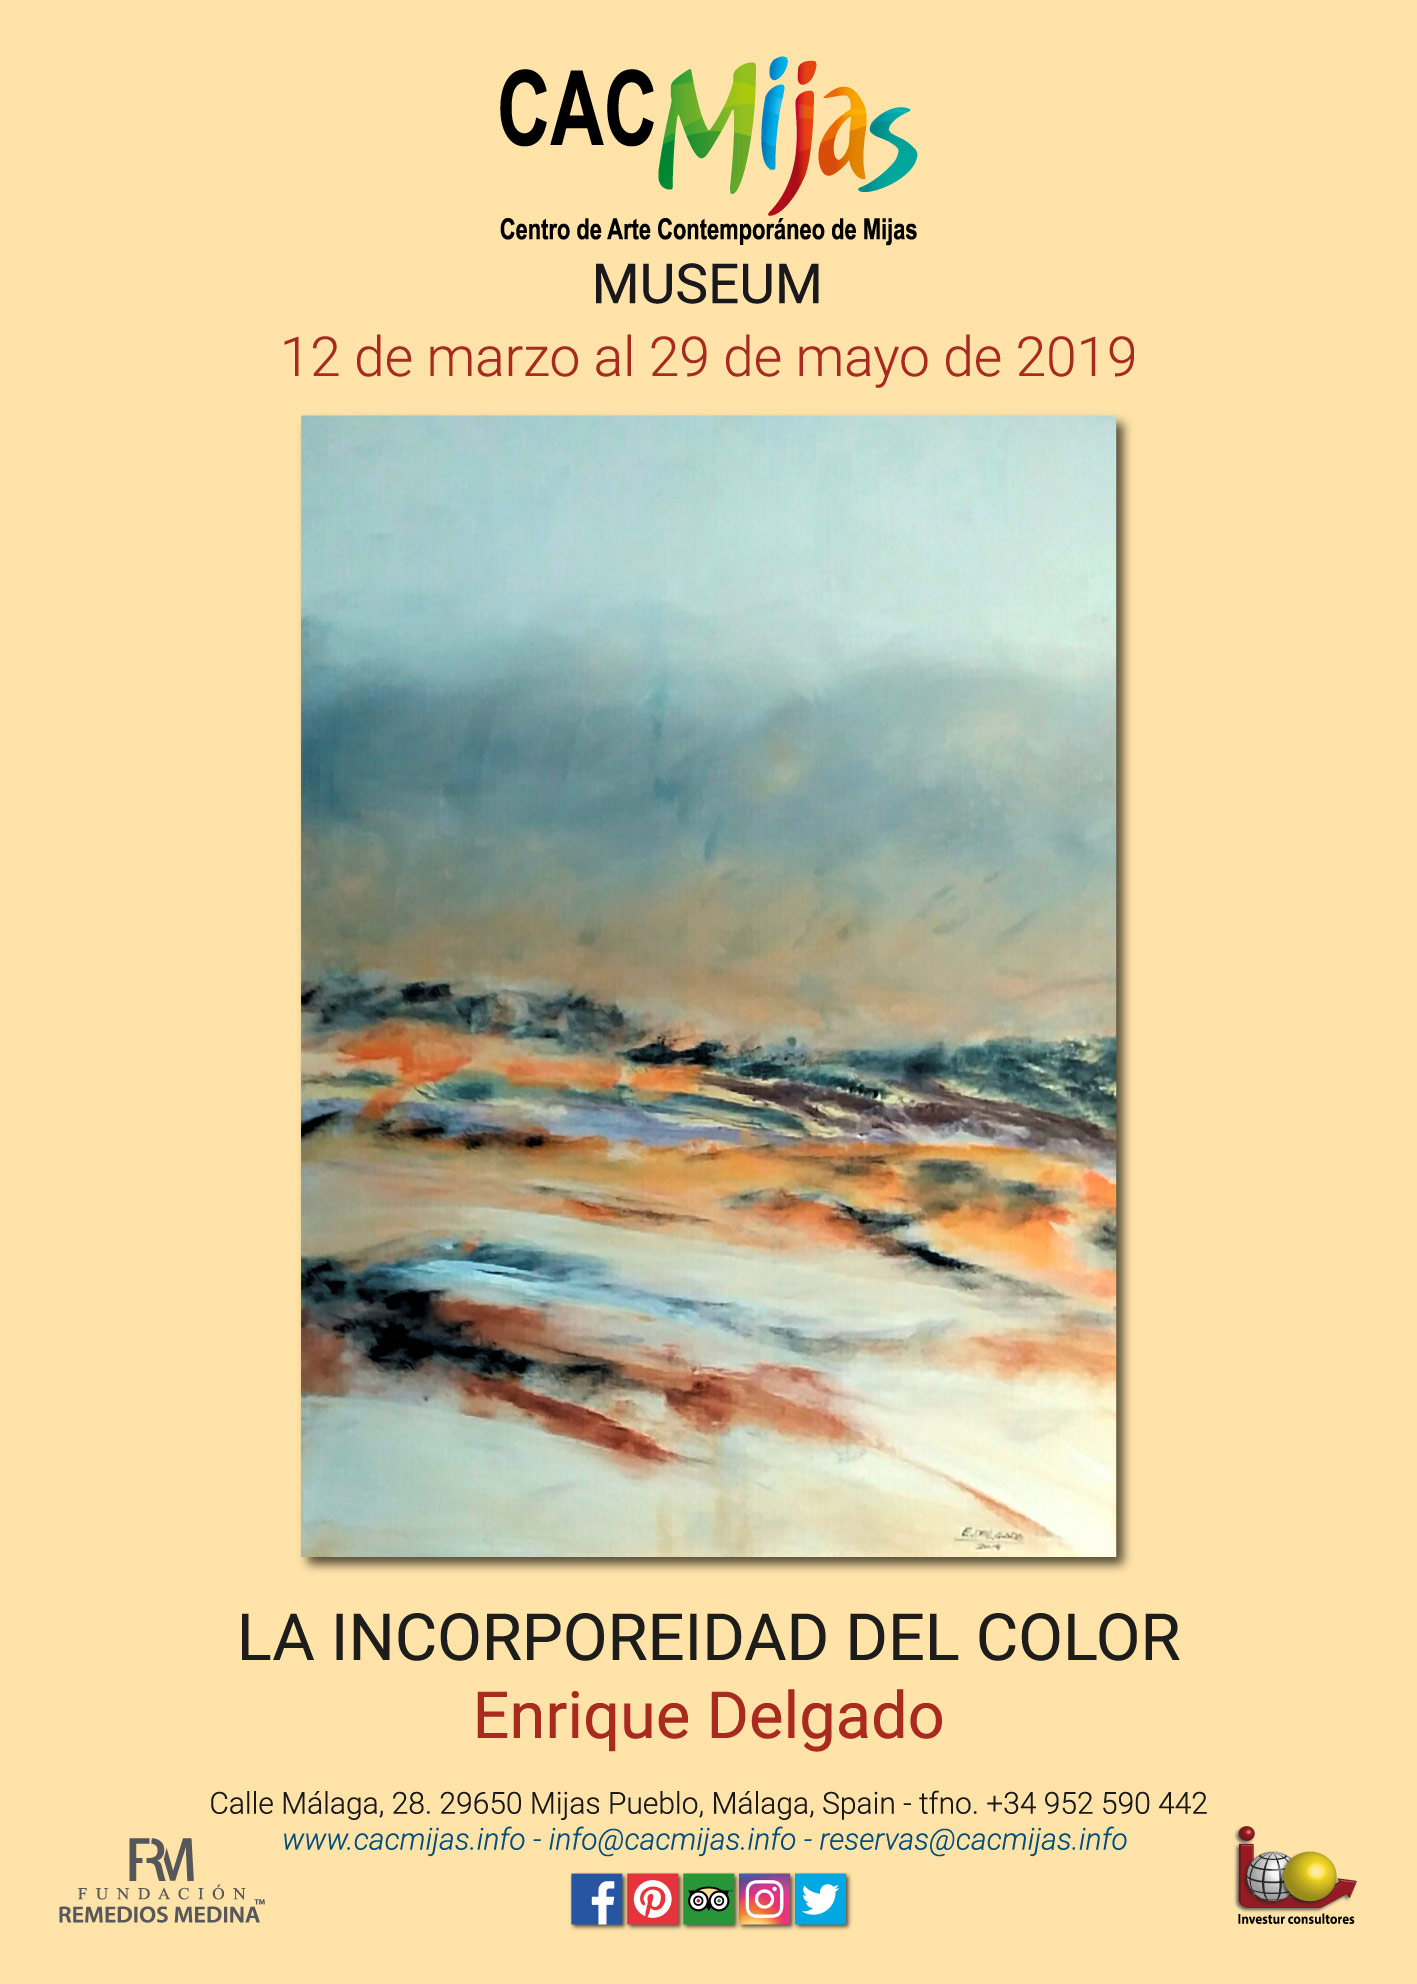 ENRIQUE DELGADO. LA INCORPOREIDAD DEL COLOR